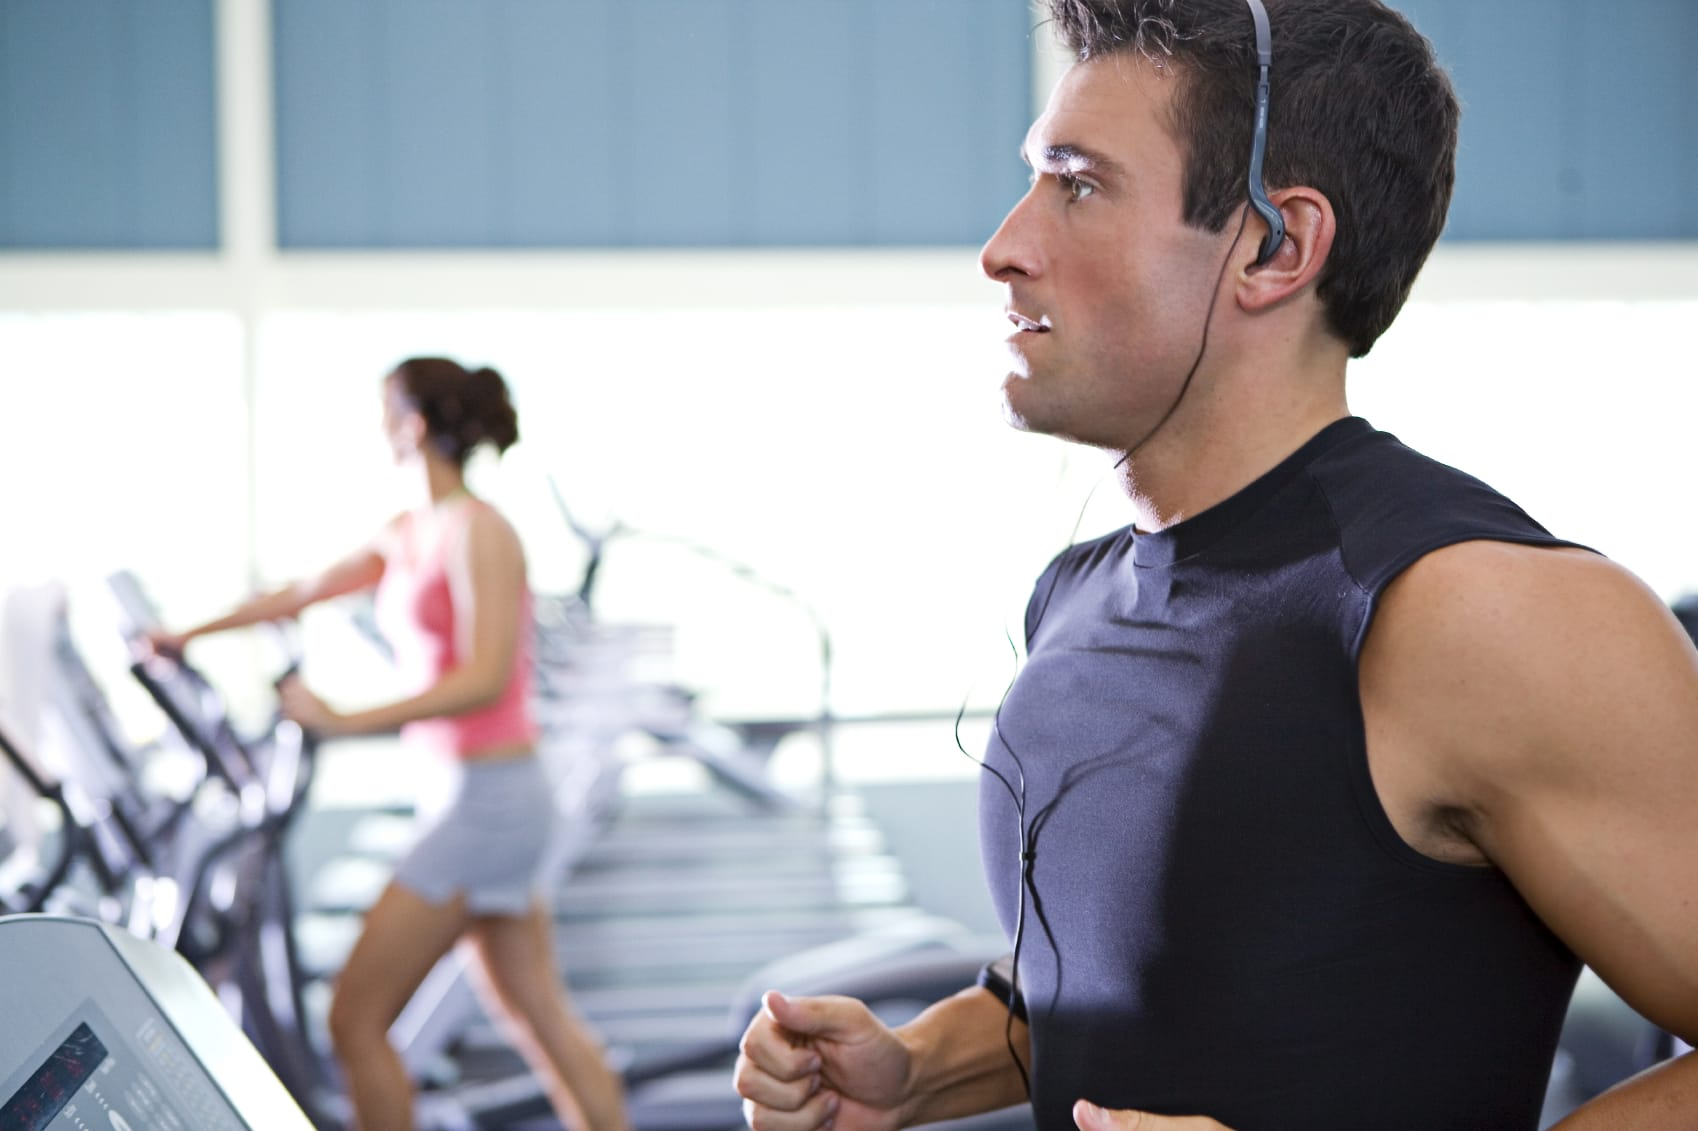 man with headphones on a gym workout, woman in the background